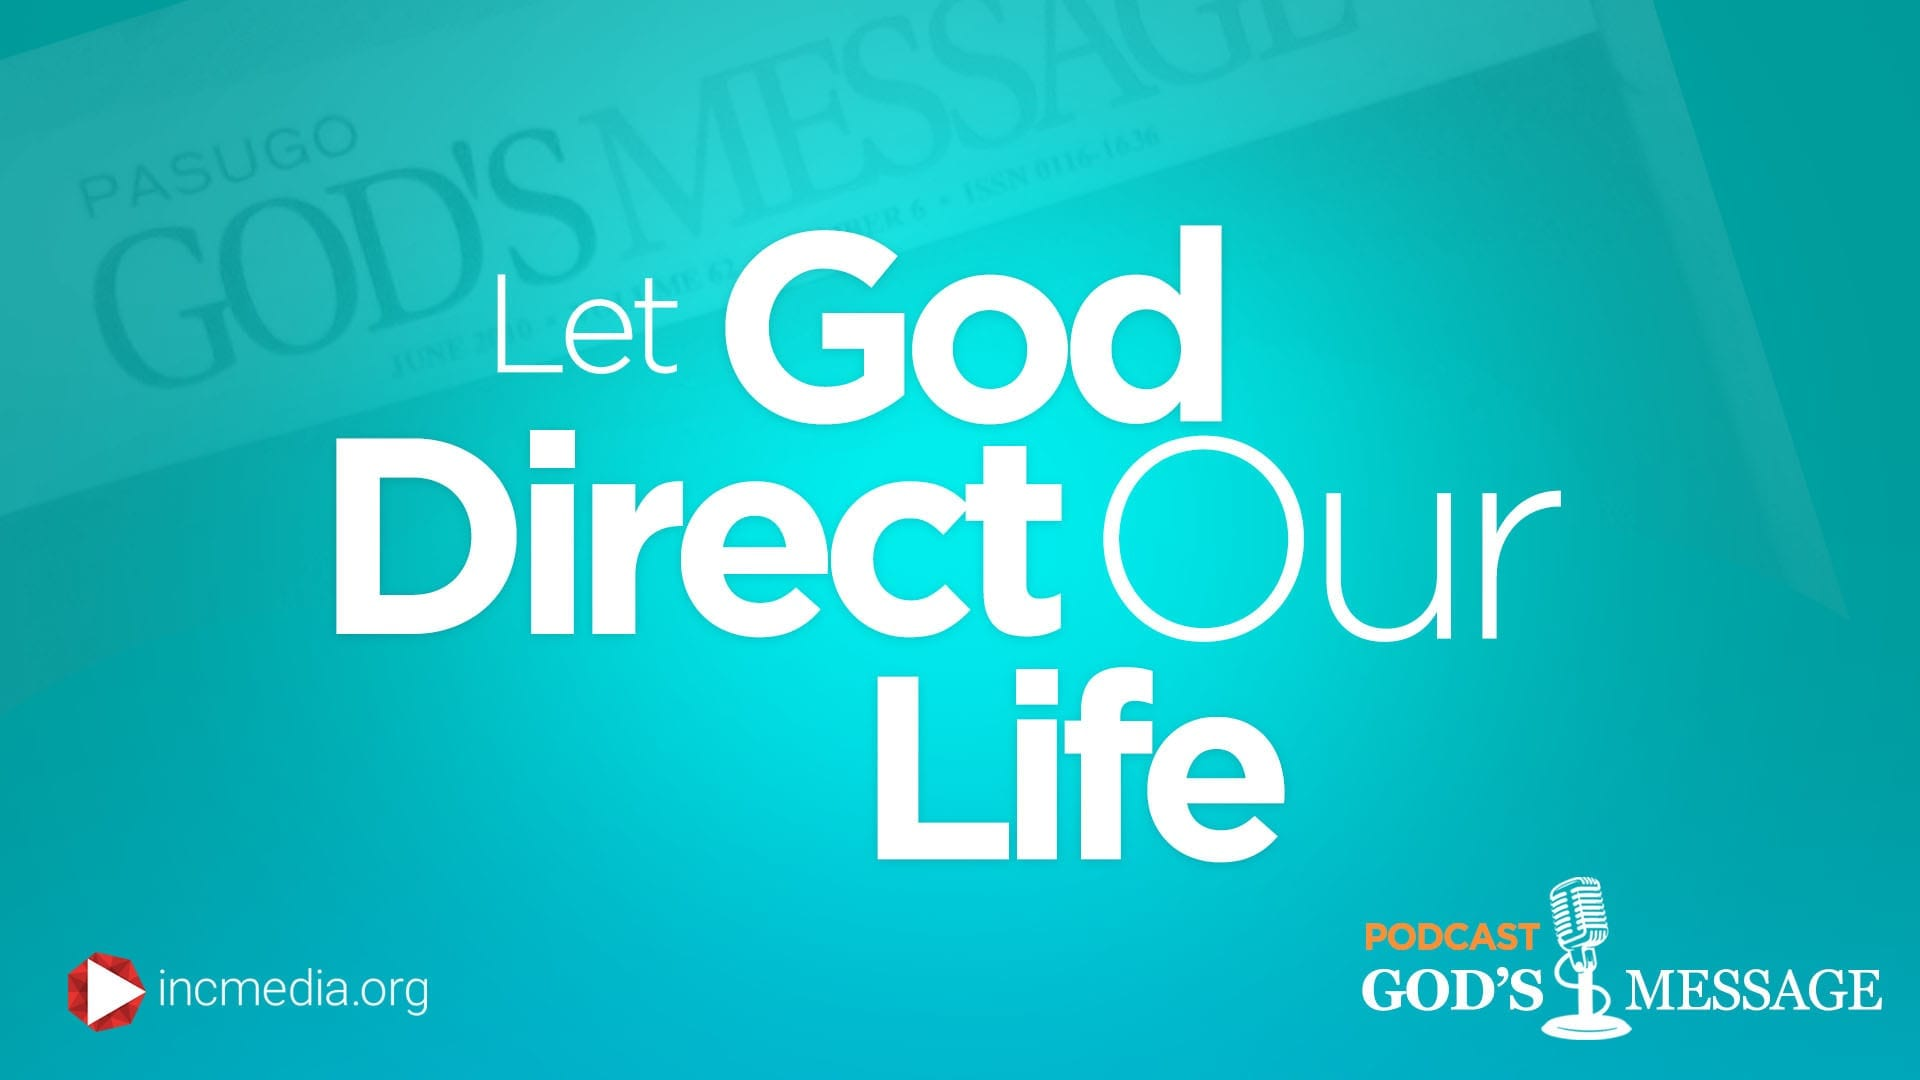 Let God Direct Our Lives